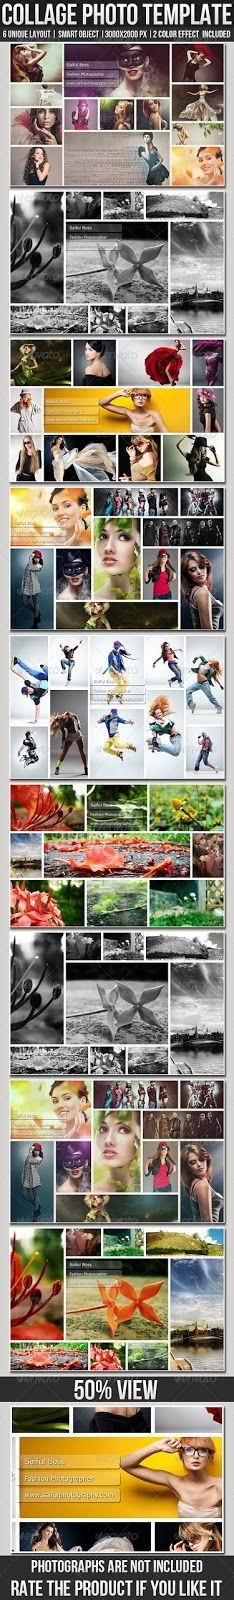 StrokeSaiful: Collage Photo Templates